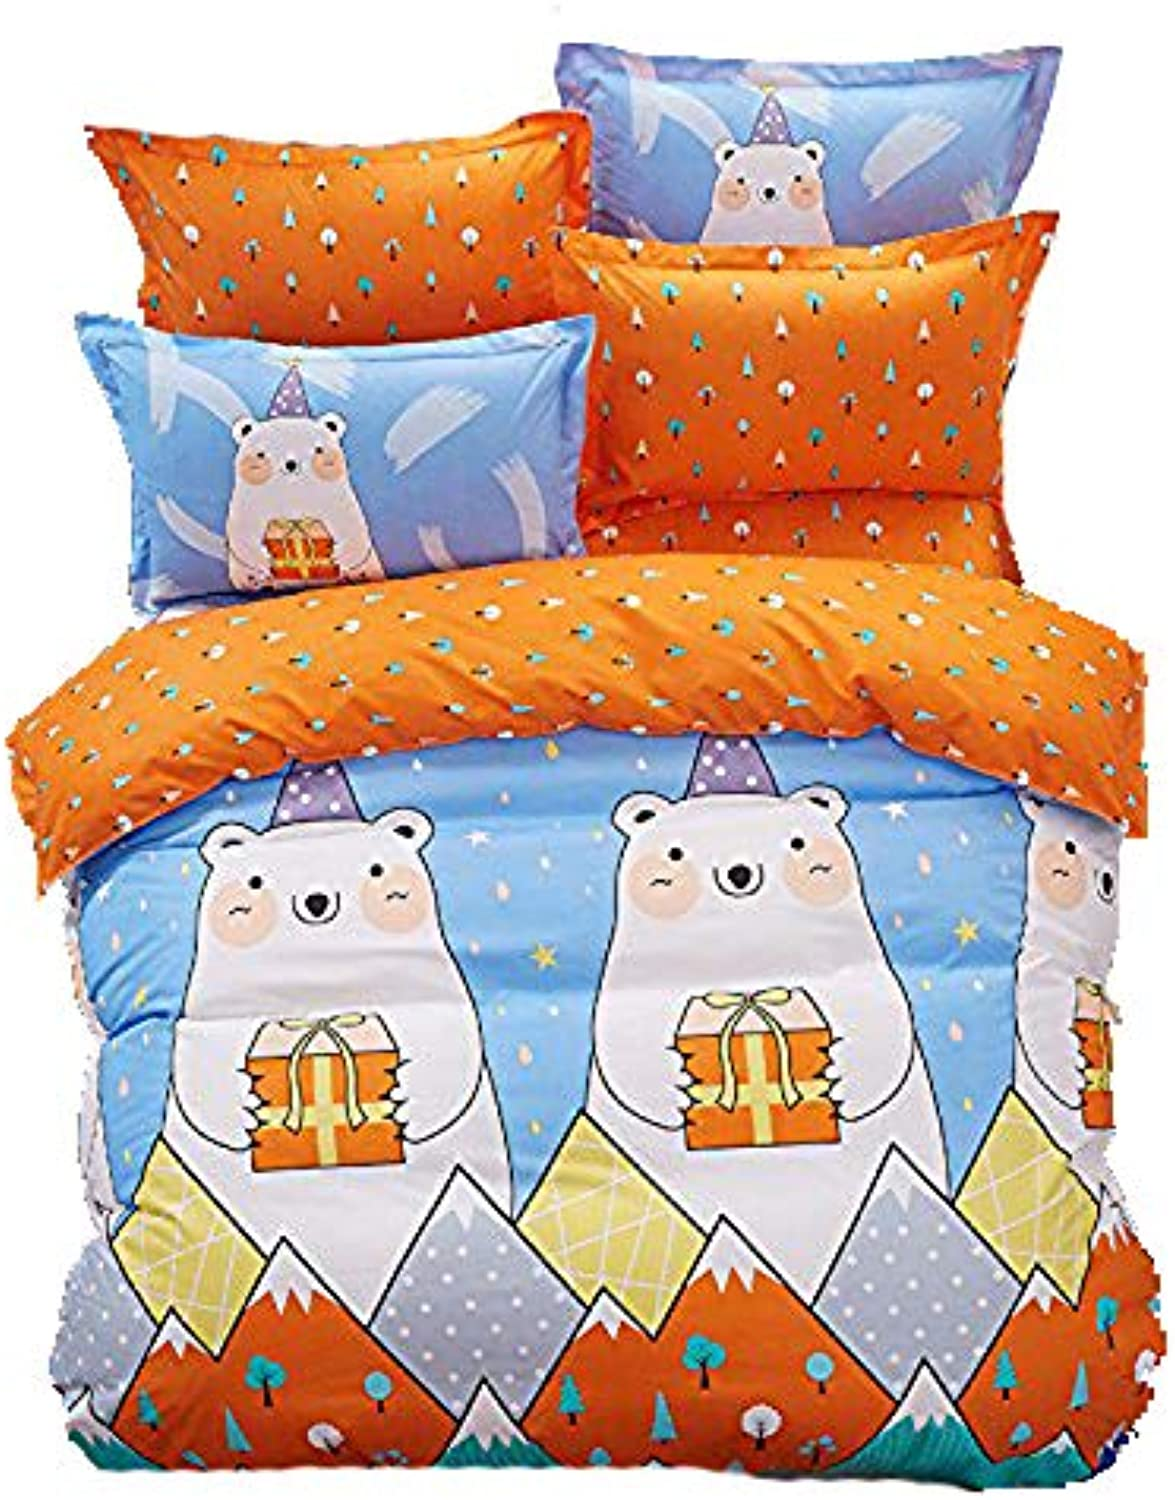 4pcs Bedding Set Duvet Cover Set 100% Combed Cotton Flat Sheet Duvet Cover Pillowcase KY Twin Full Queen Happy Animal Cartoon Design (Queen, Gift Bear, bluee)